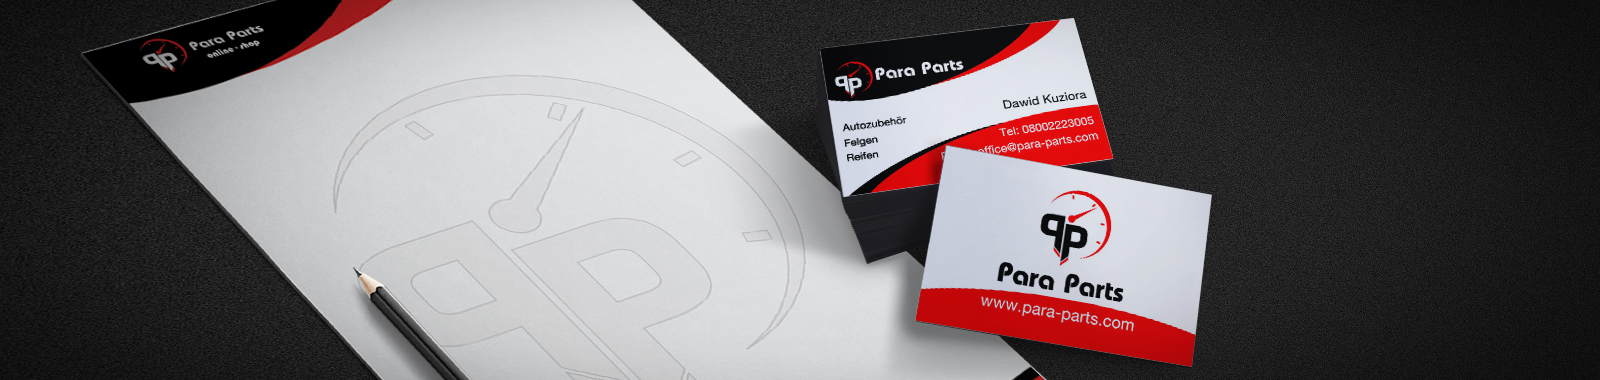 Business cards - Designing and printing of business cards